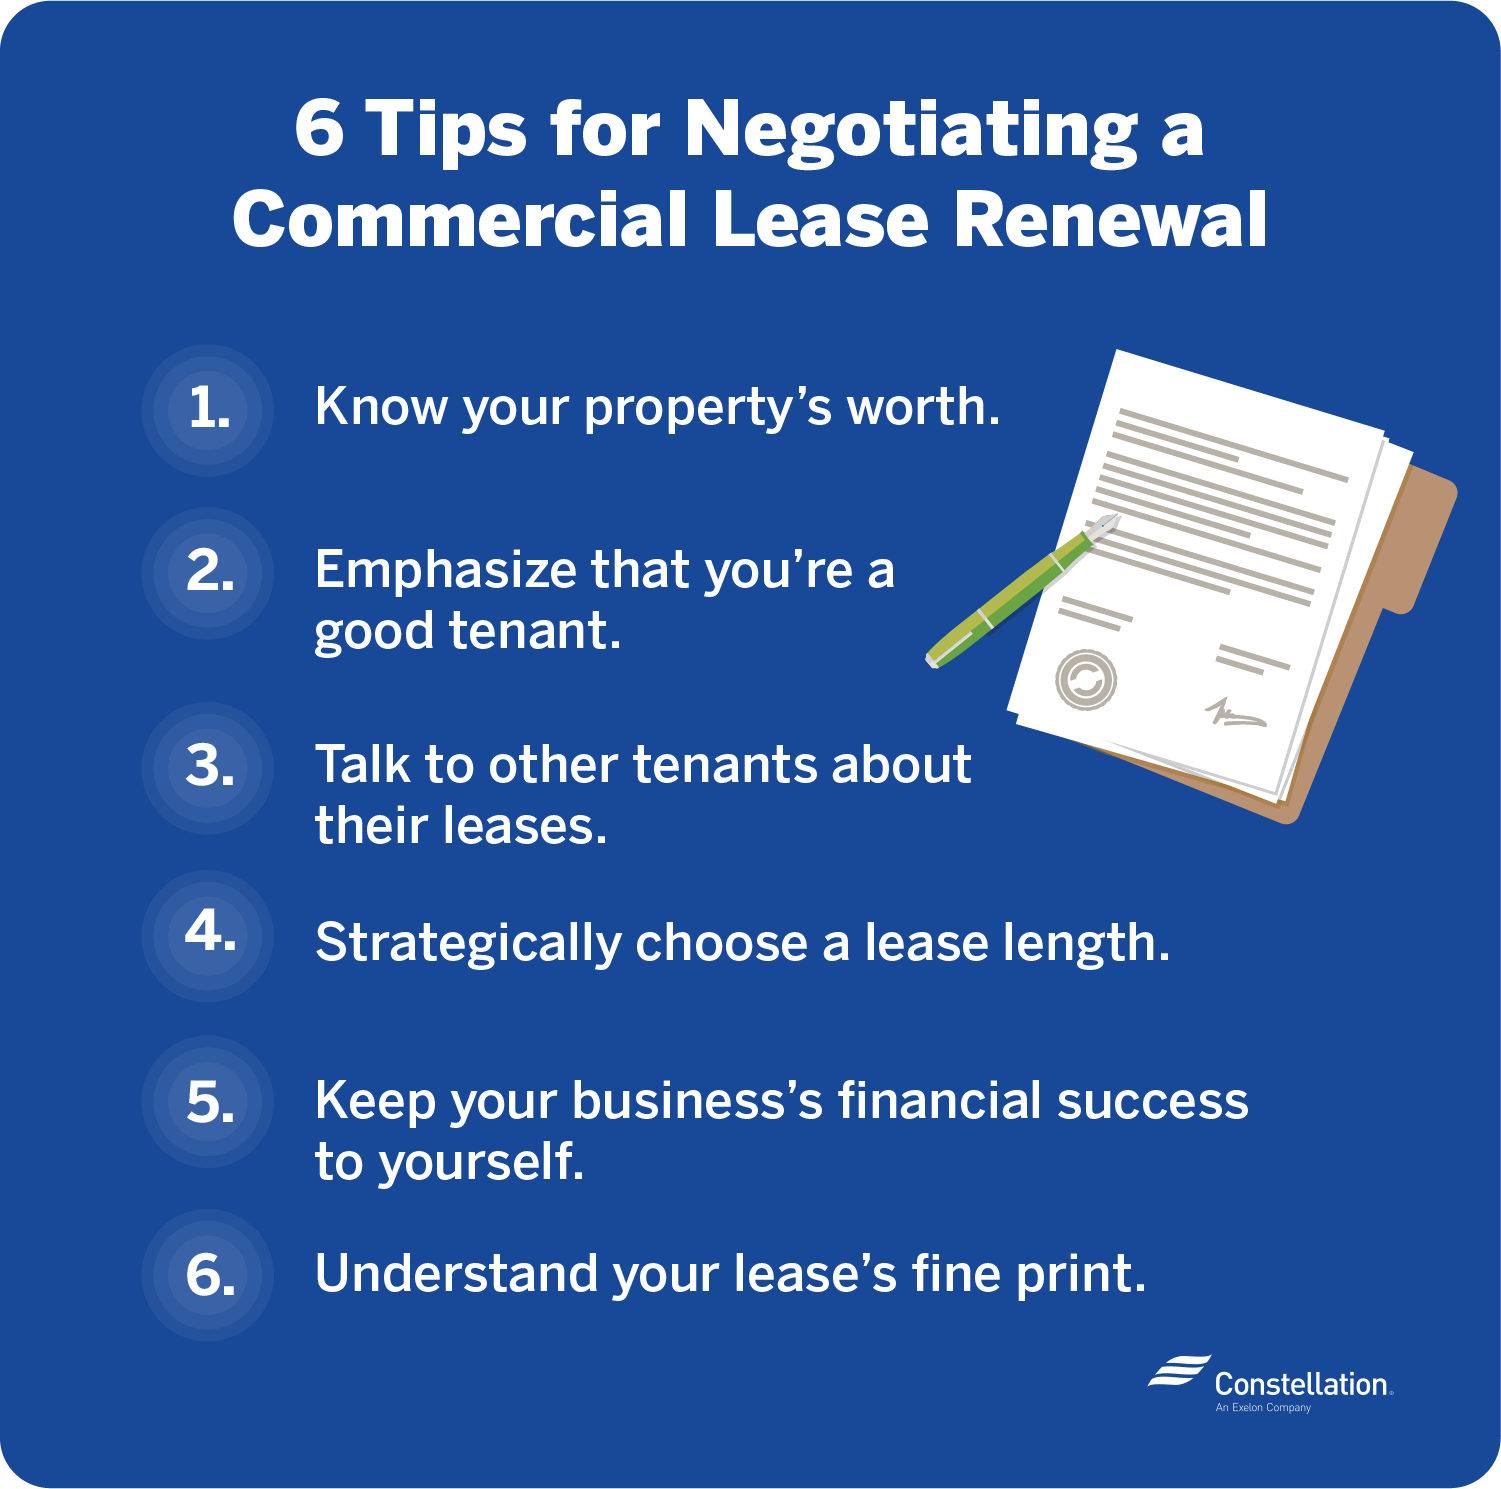 6 tips for how to negotiate a commercial lease renewal